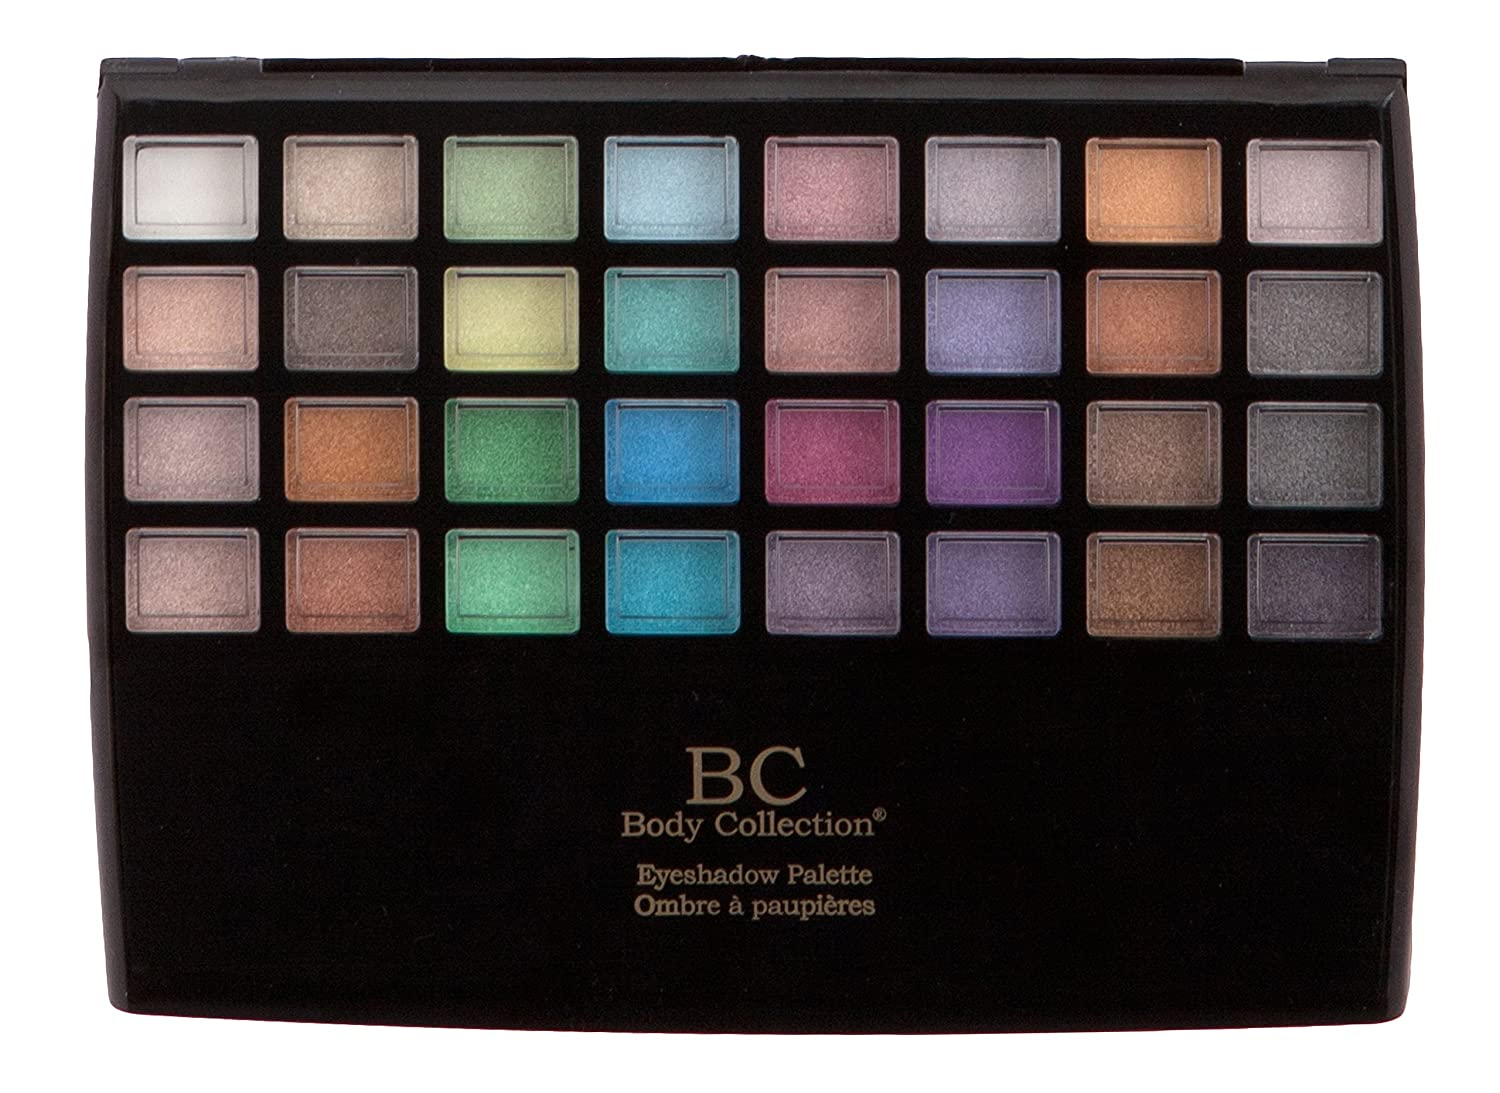 Body Collection 48 Colour Eyeshadow Palette Badgequo Ltd 19505